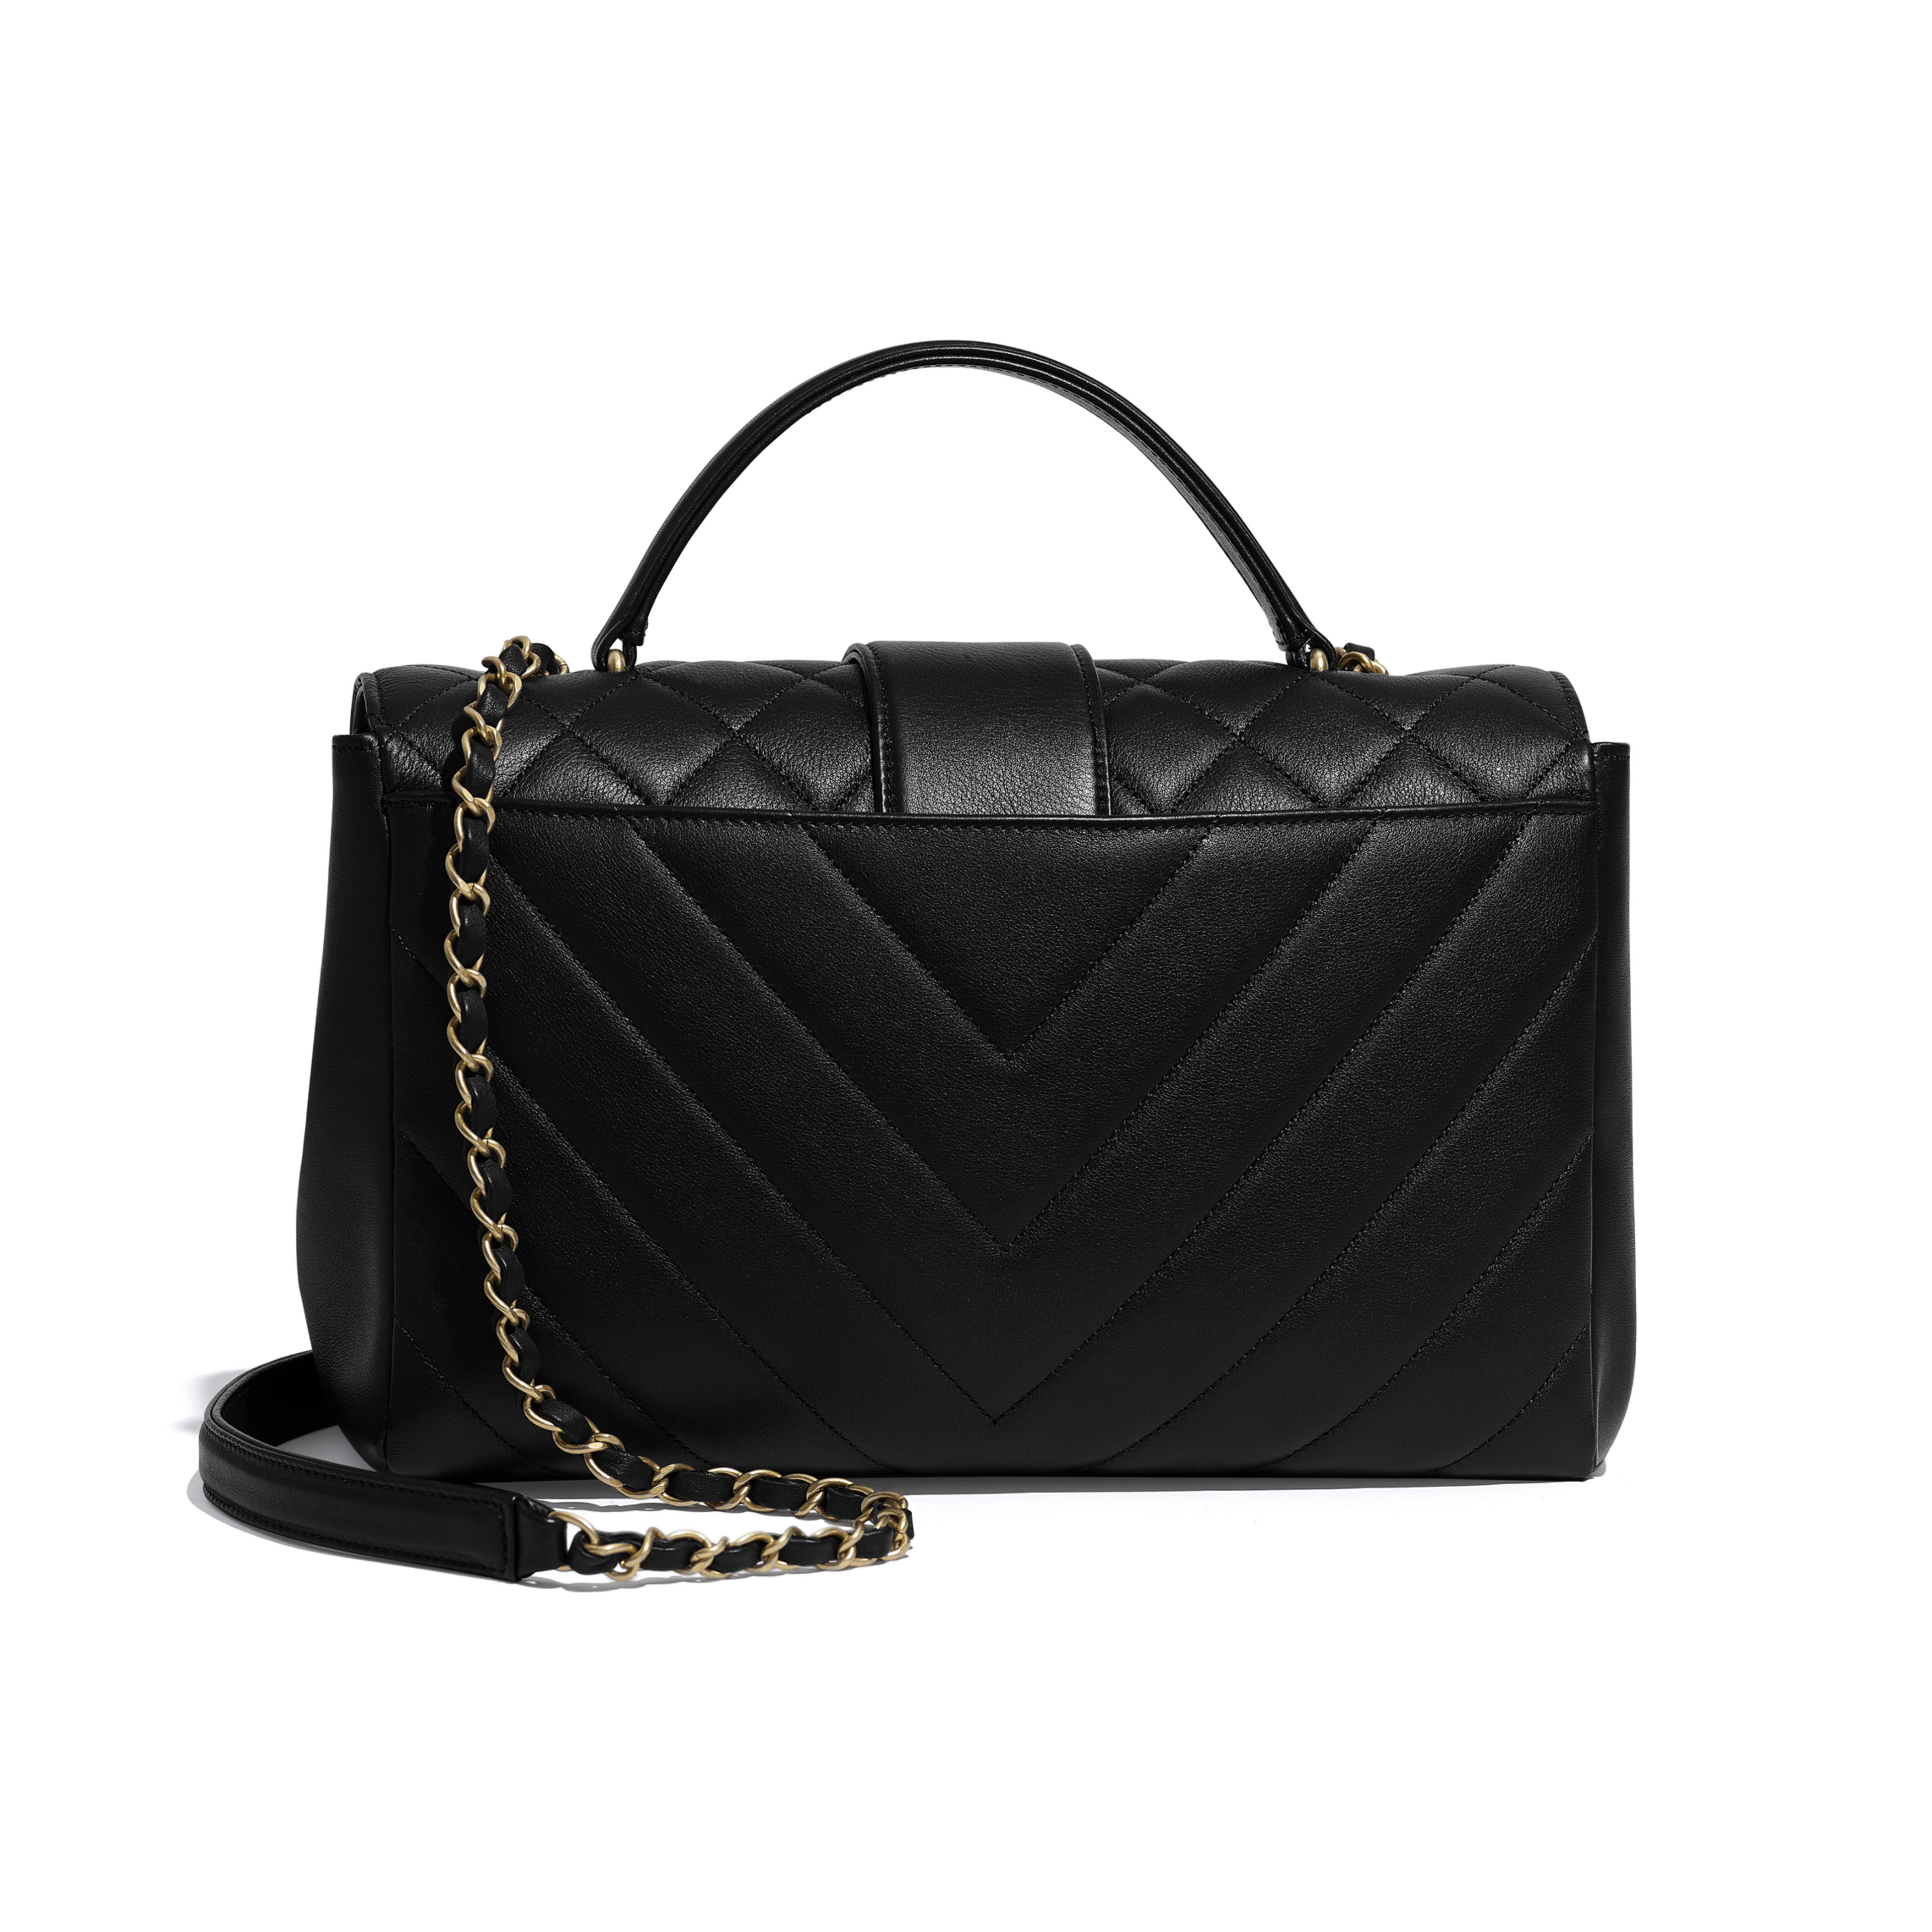 Flap Bag with Top Handle - Black - Calfskin & Gold-Tone Metal - Alternative view - see full sized version